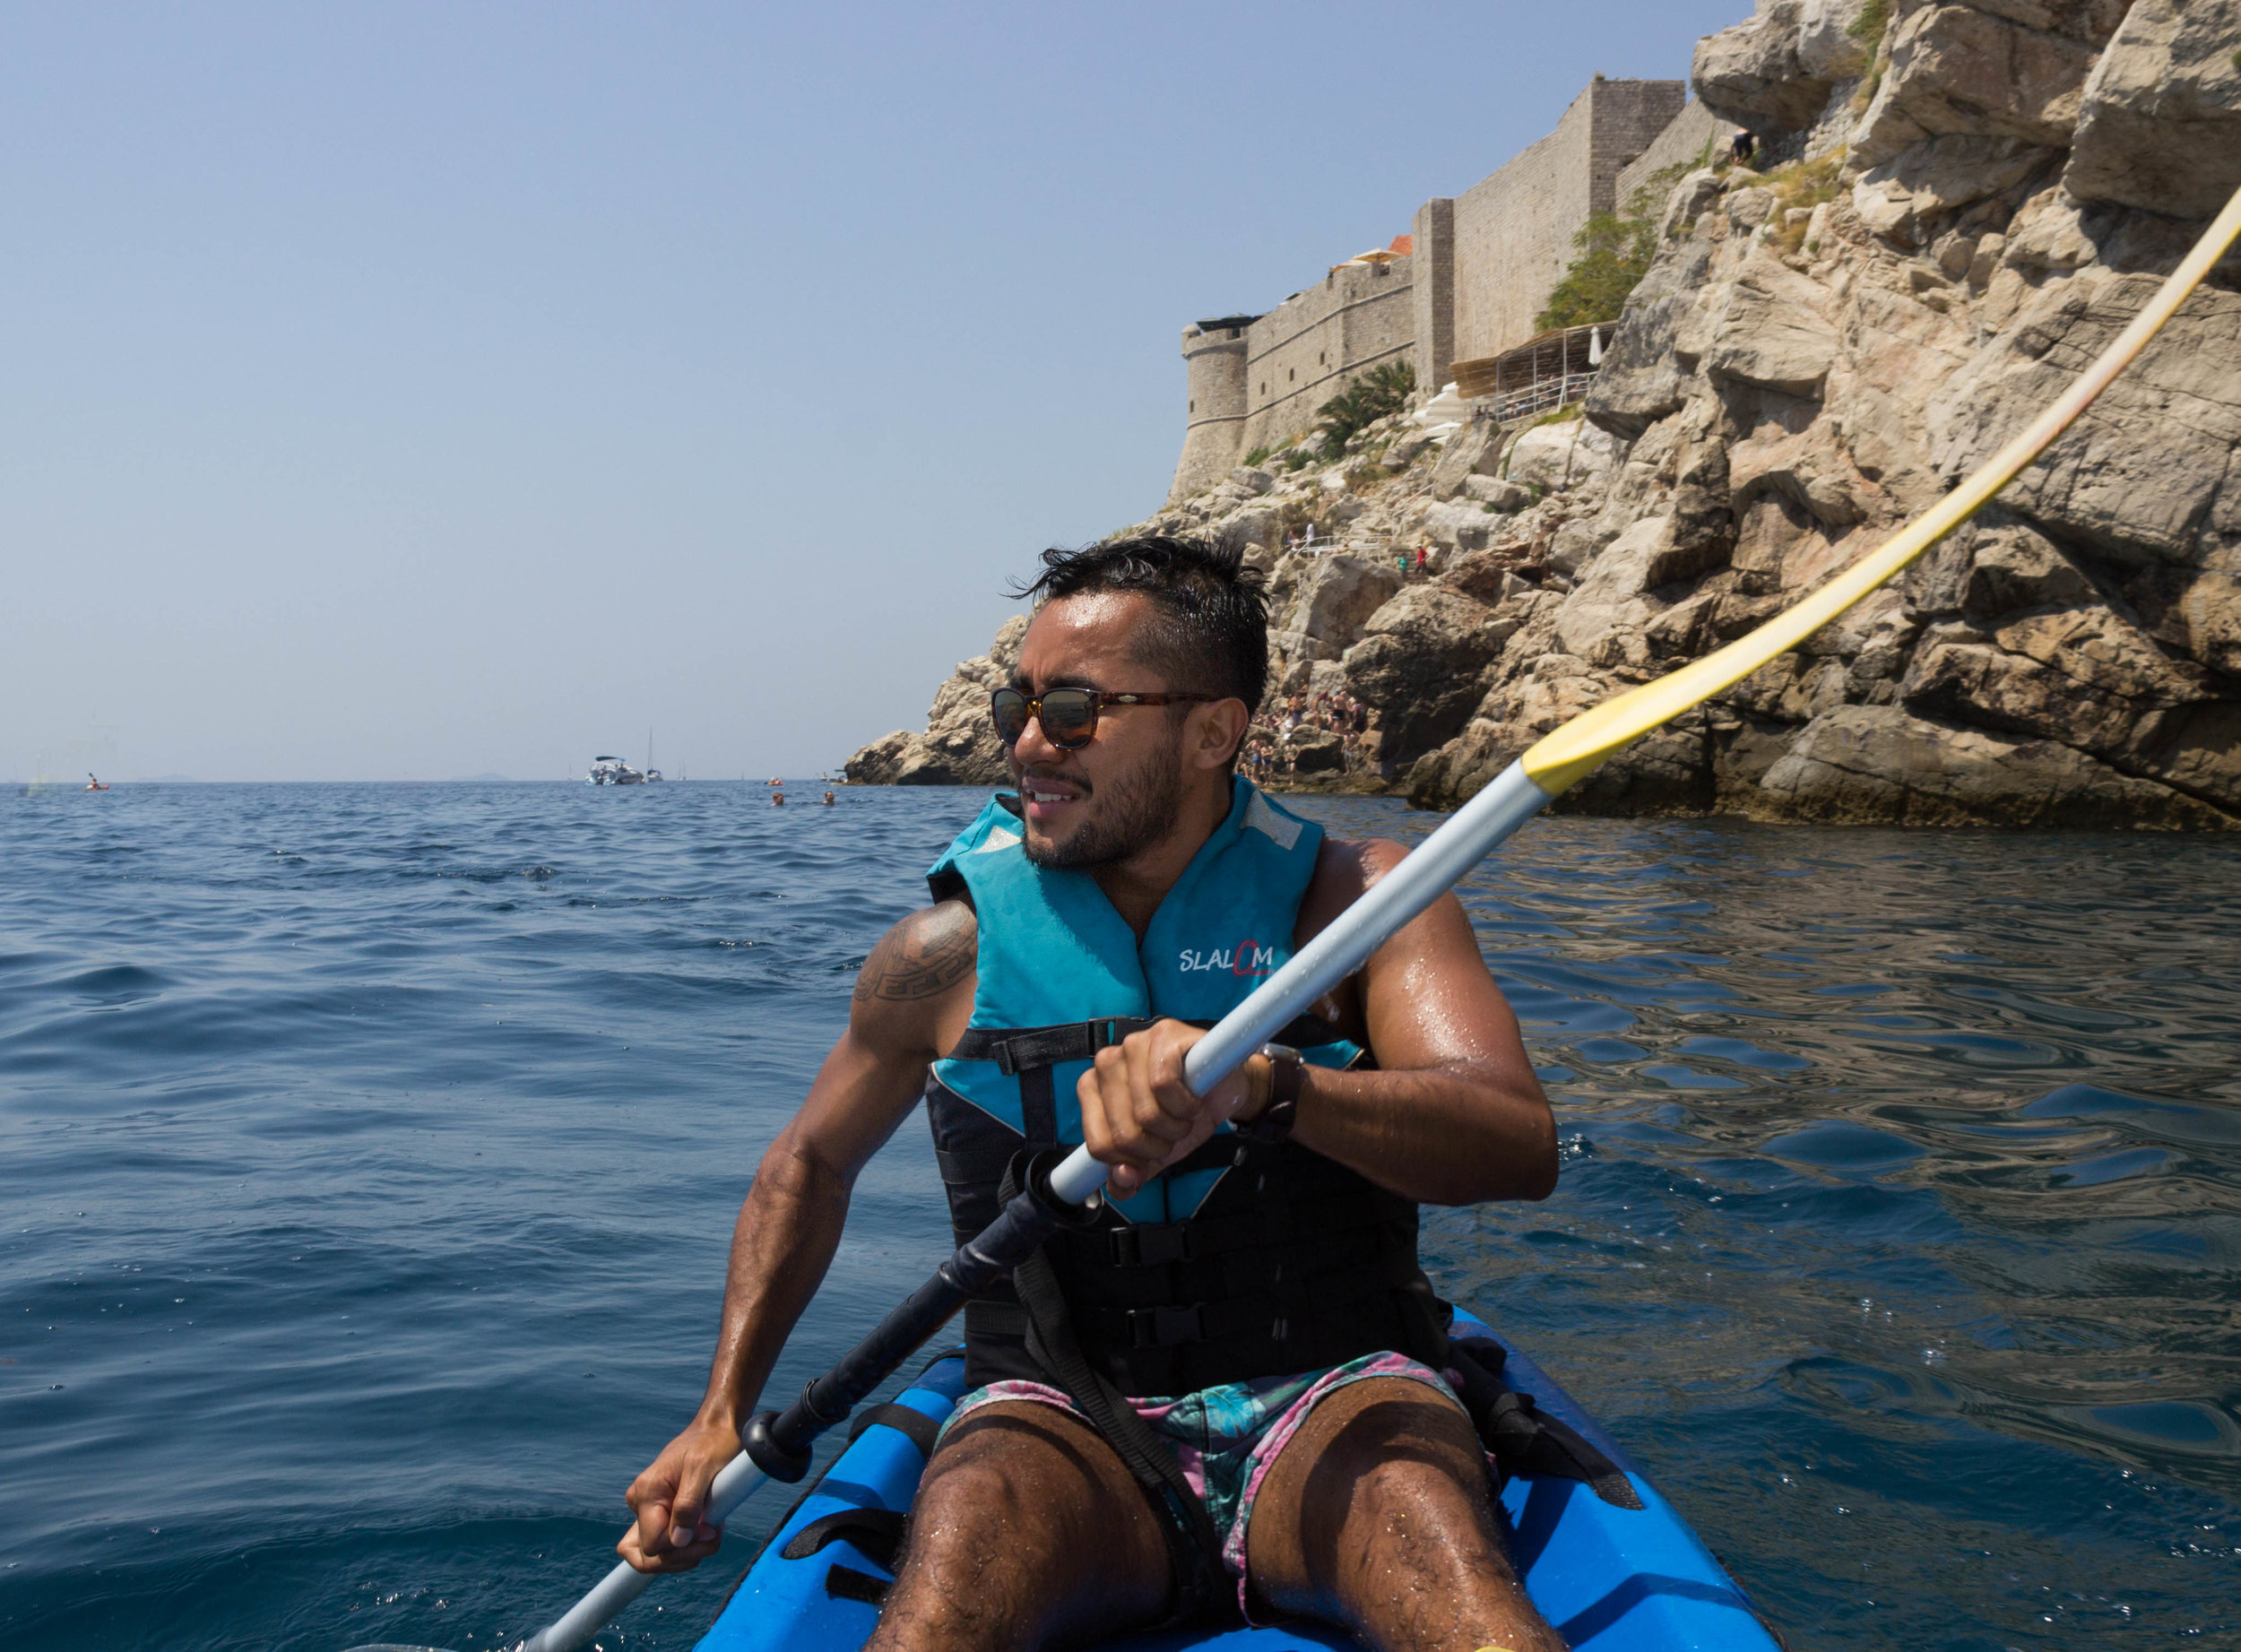 Luis kayaking outside the walls of Dubrovnik